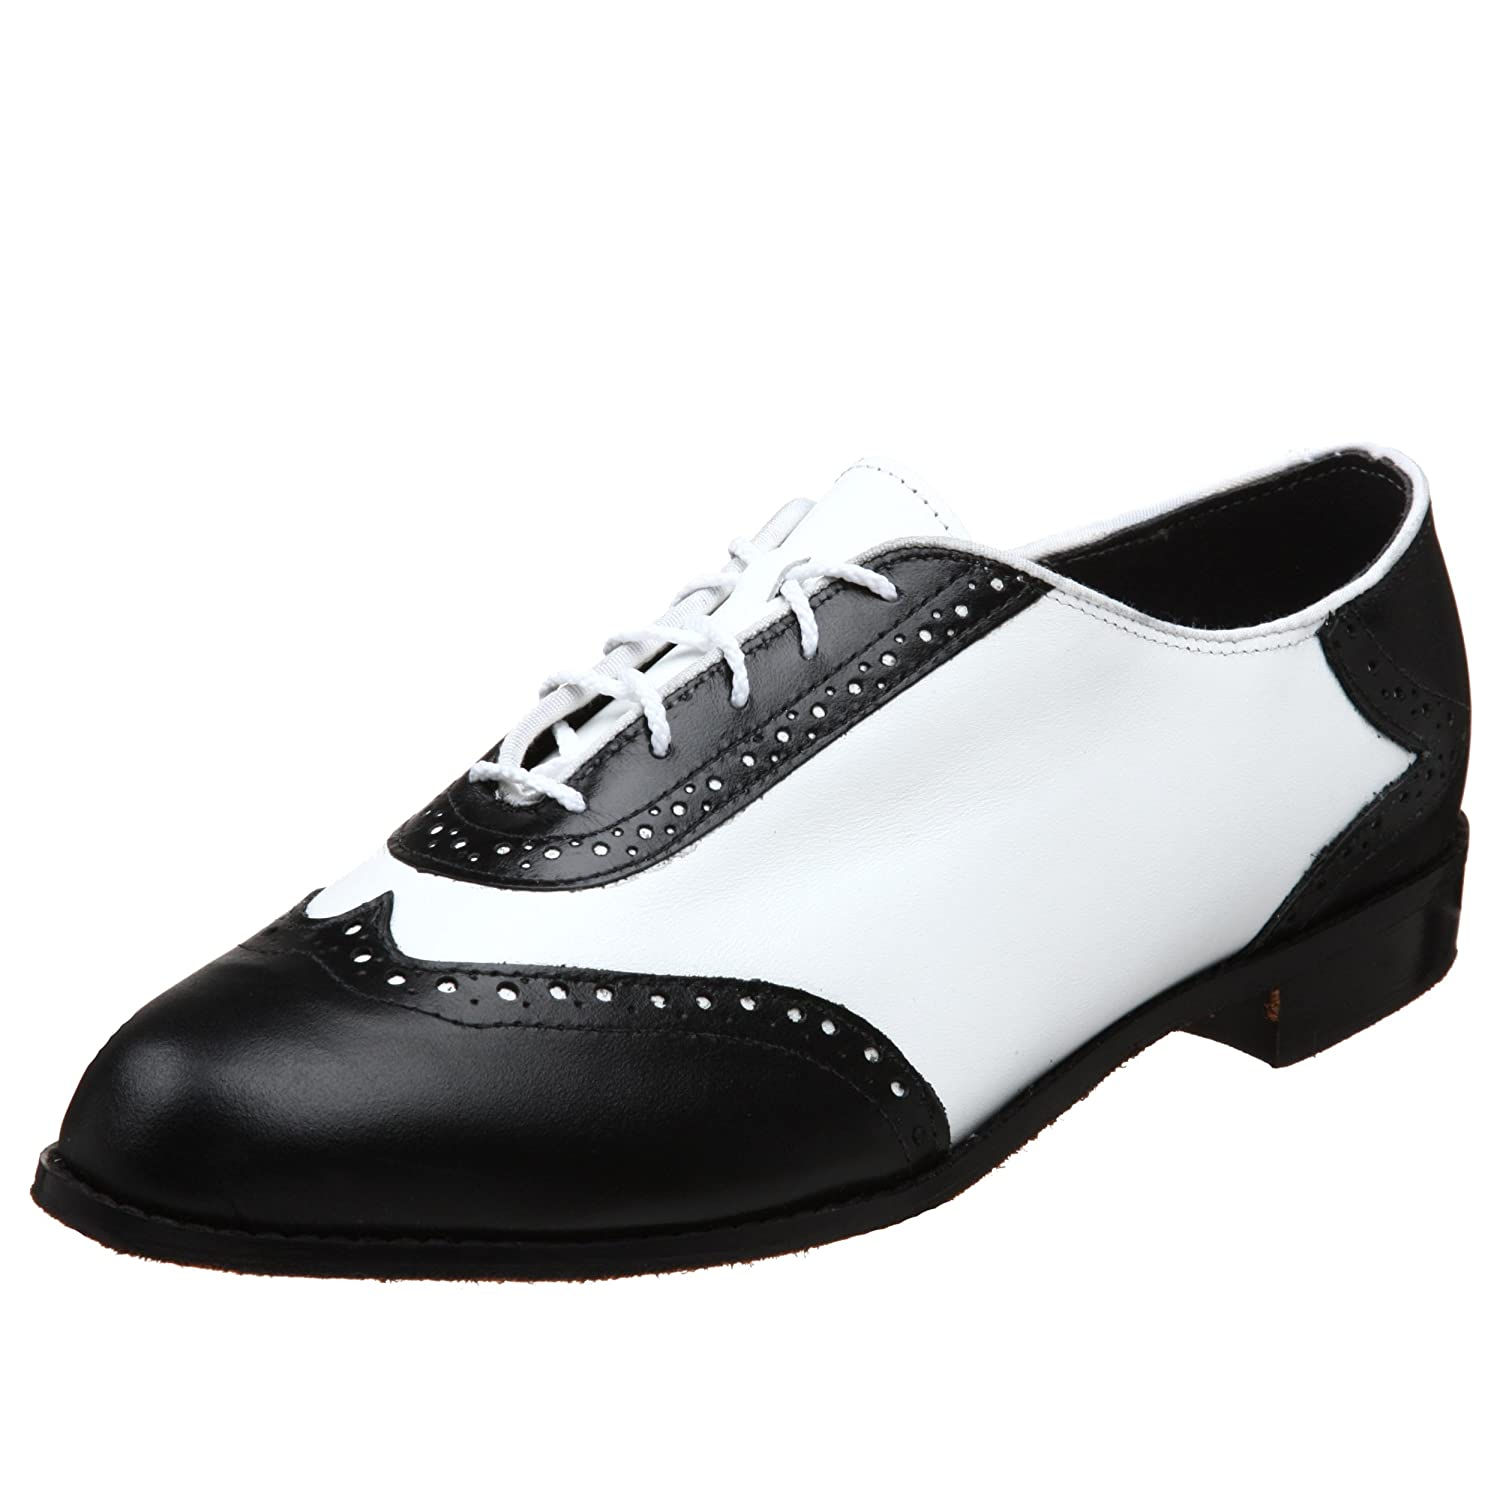 Men's Swing Dance Clothing, Vintage Dance Clothes Mens Glenn Wing Tip Dance Shoe Tic-Tac-Toes  $108.00 AT vintagedancer.com